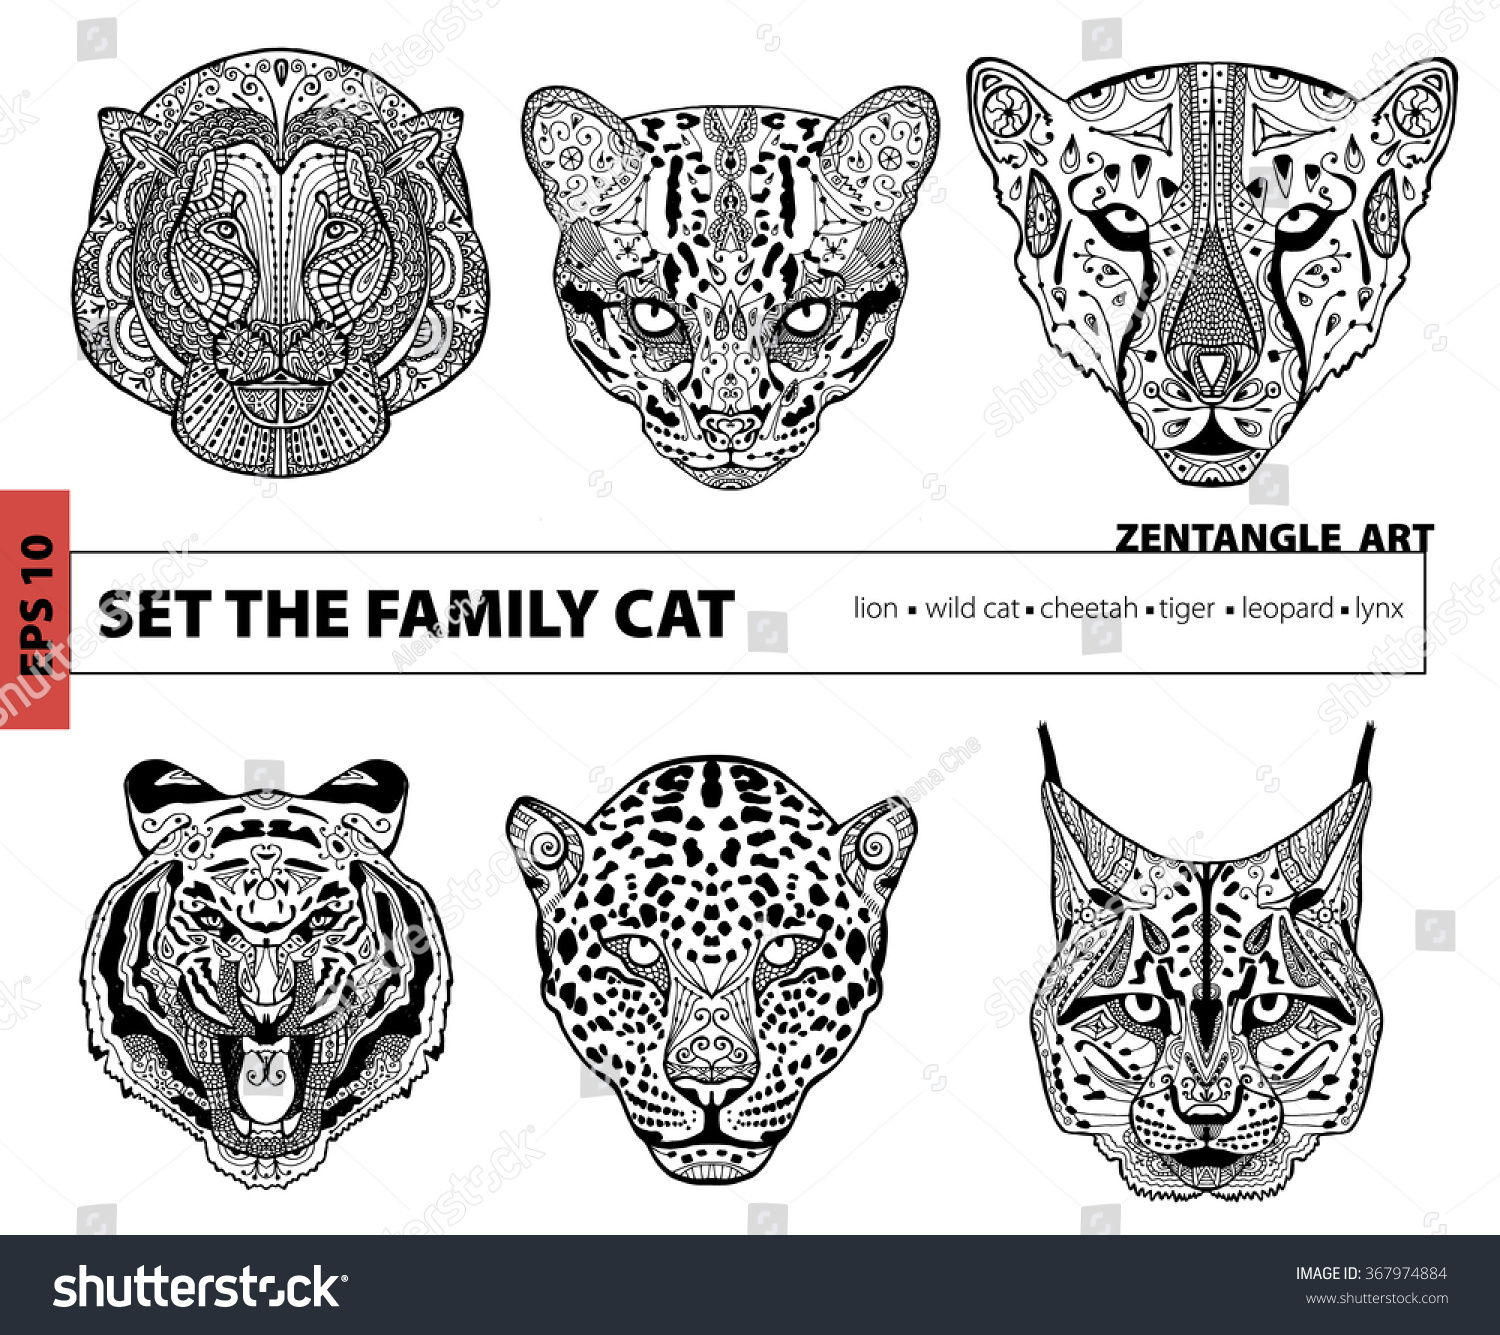 Set The Family Cat Coloring Book For Adults Zentangle Art Pattern Hand